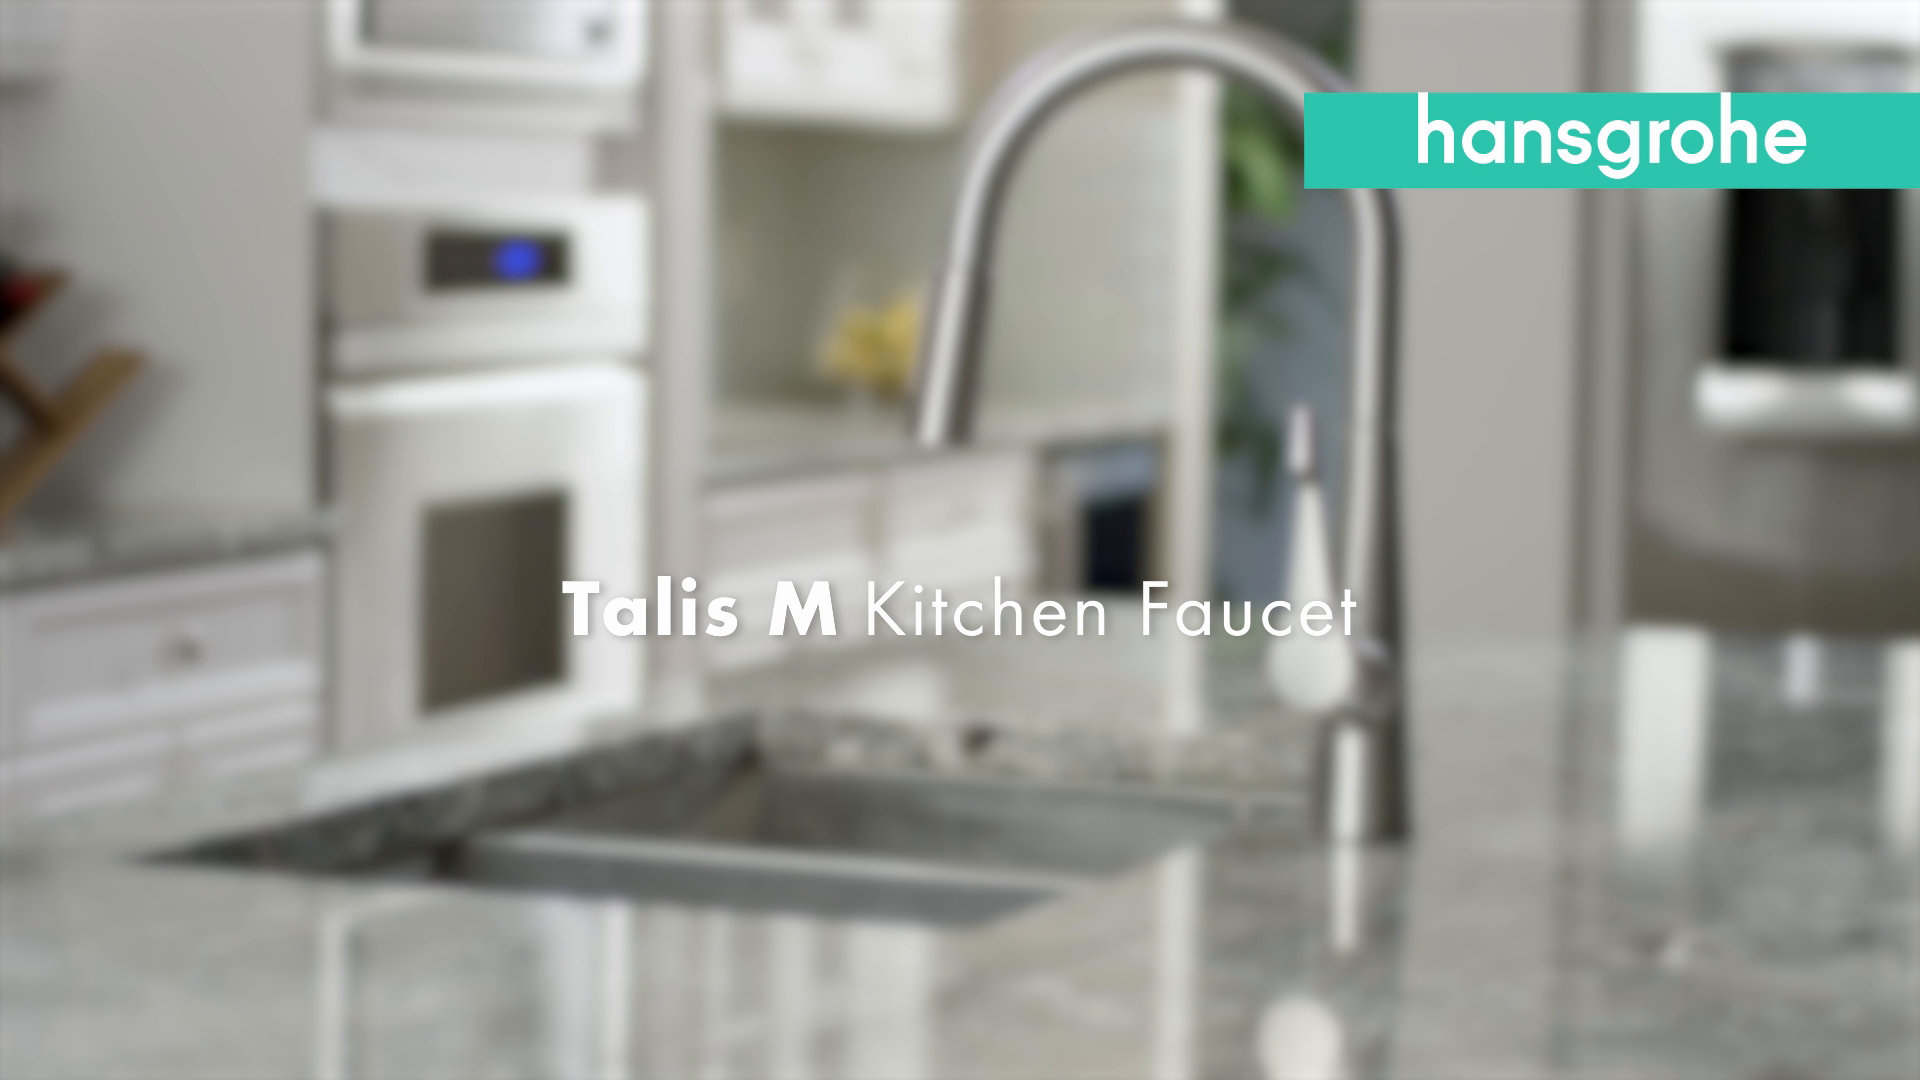 Hansgrohe Kitchen Faucets Talis M Kitchen Ideas - Hansgrohe talis m pull down kitchen faucet